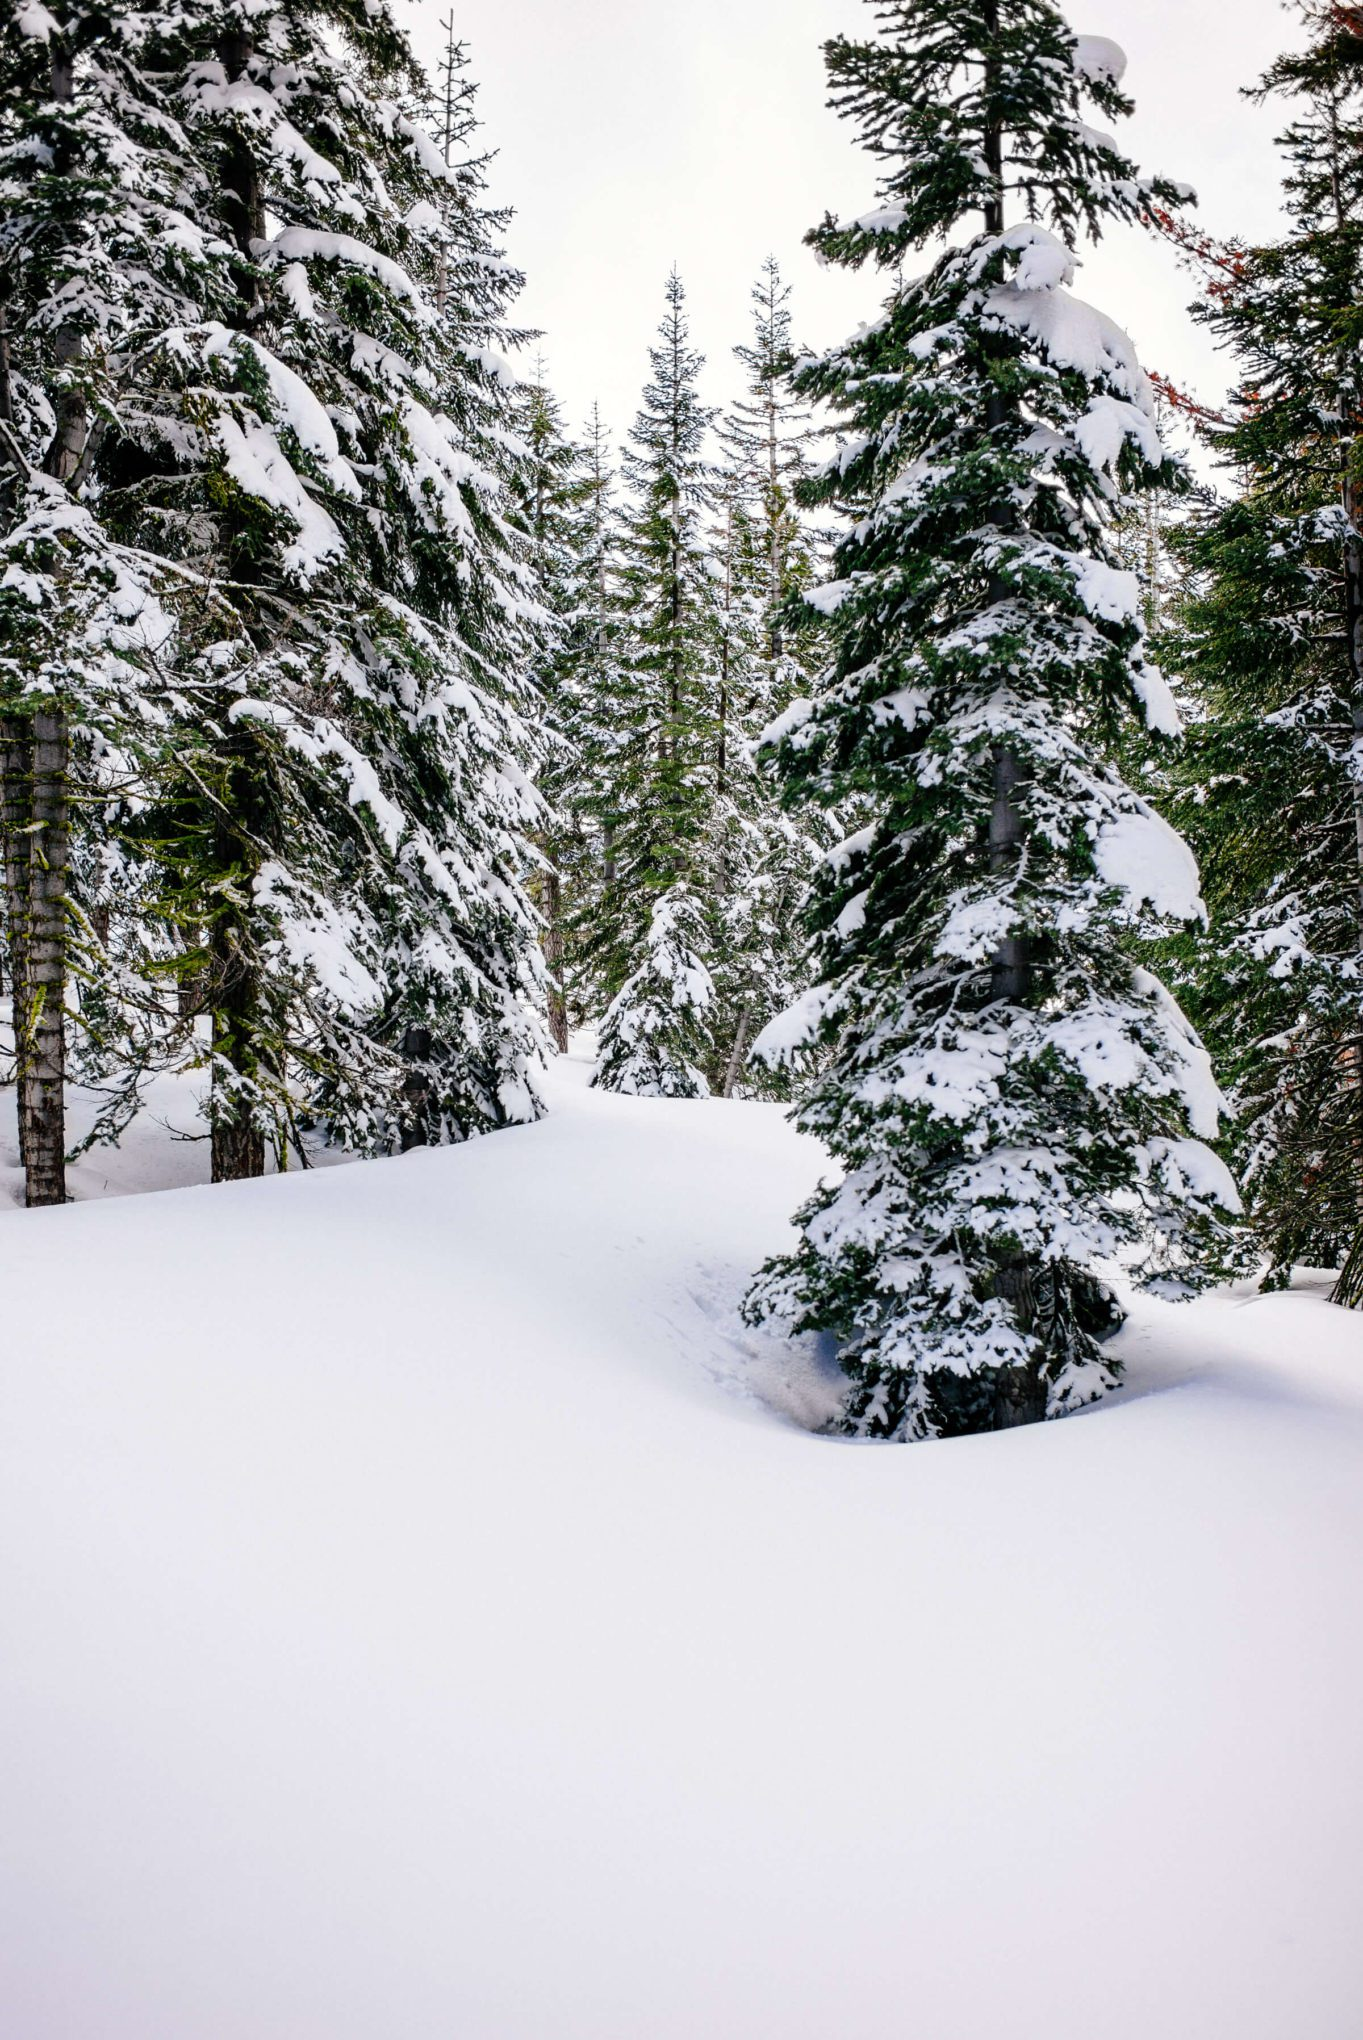 Trees covered in snow at Northstar California and The Ritz-Carlton hotel, The Taste SF